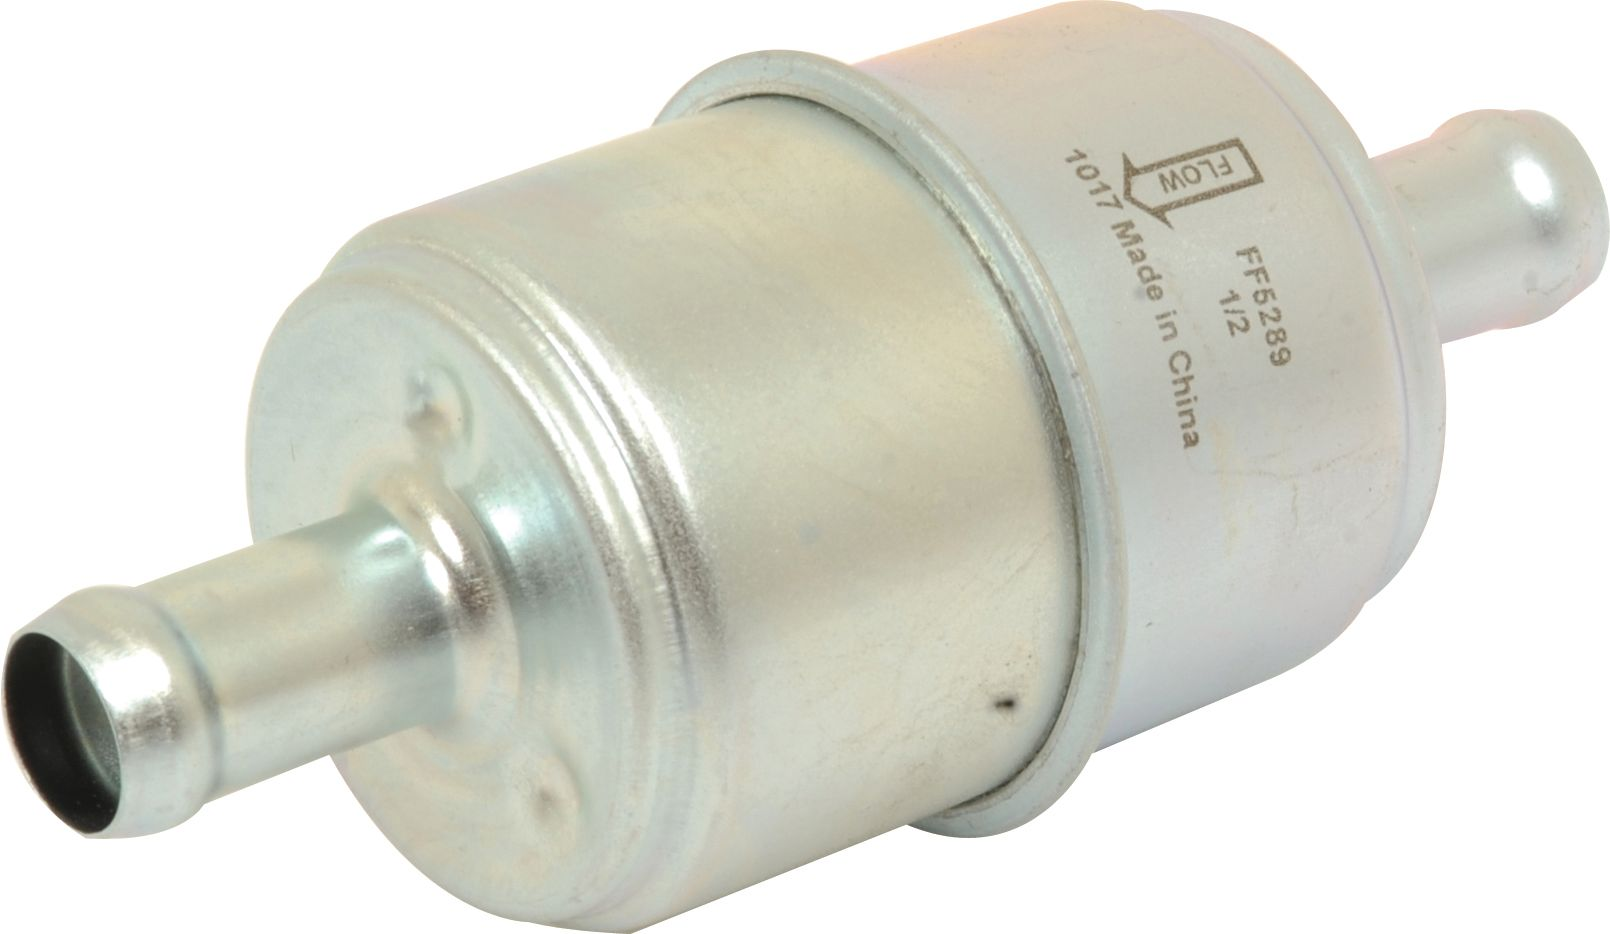 Ford New Holland Filters Spare Parts Buy Any Part Webb Fuel Filter Ff5289